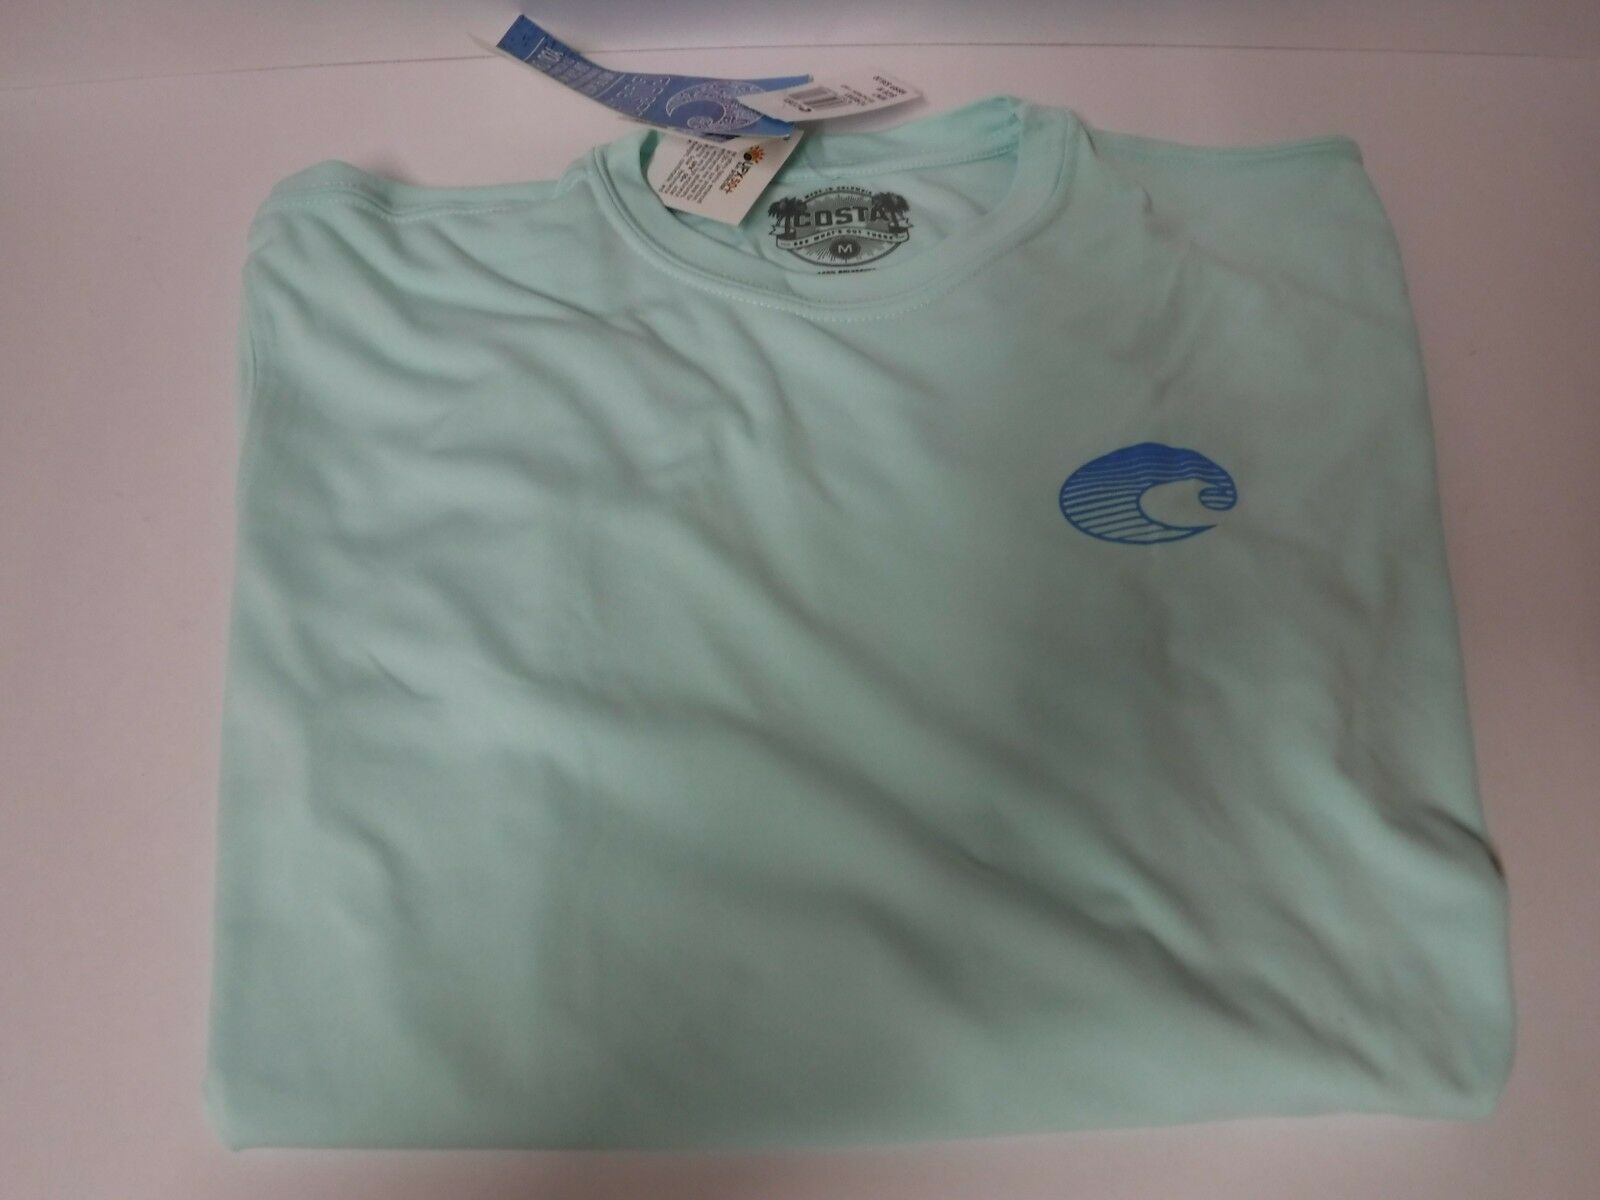 New Authentic  Costa Del Mar Technical Crew Mint L S T Shirt   Shield   2XLarge  all in high quality and low price